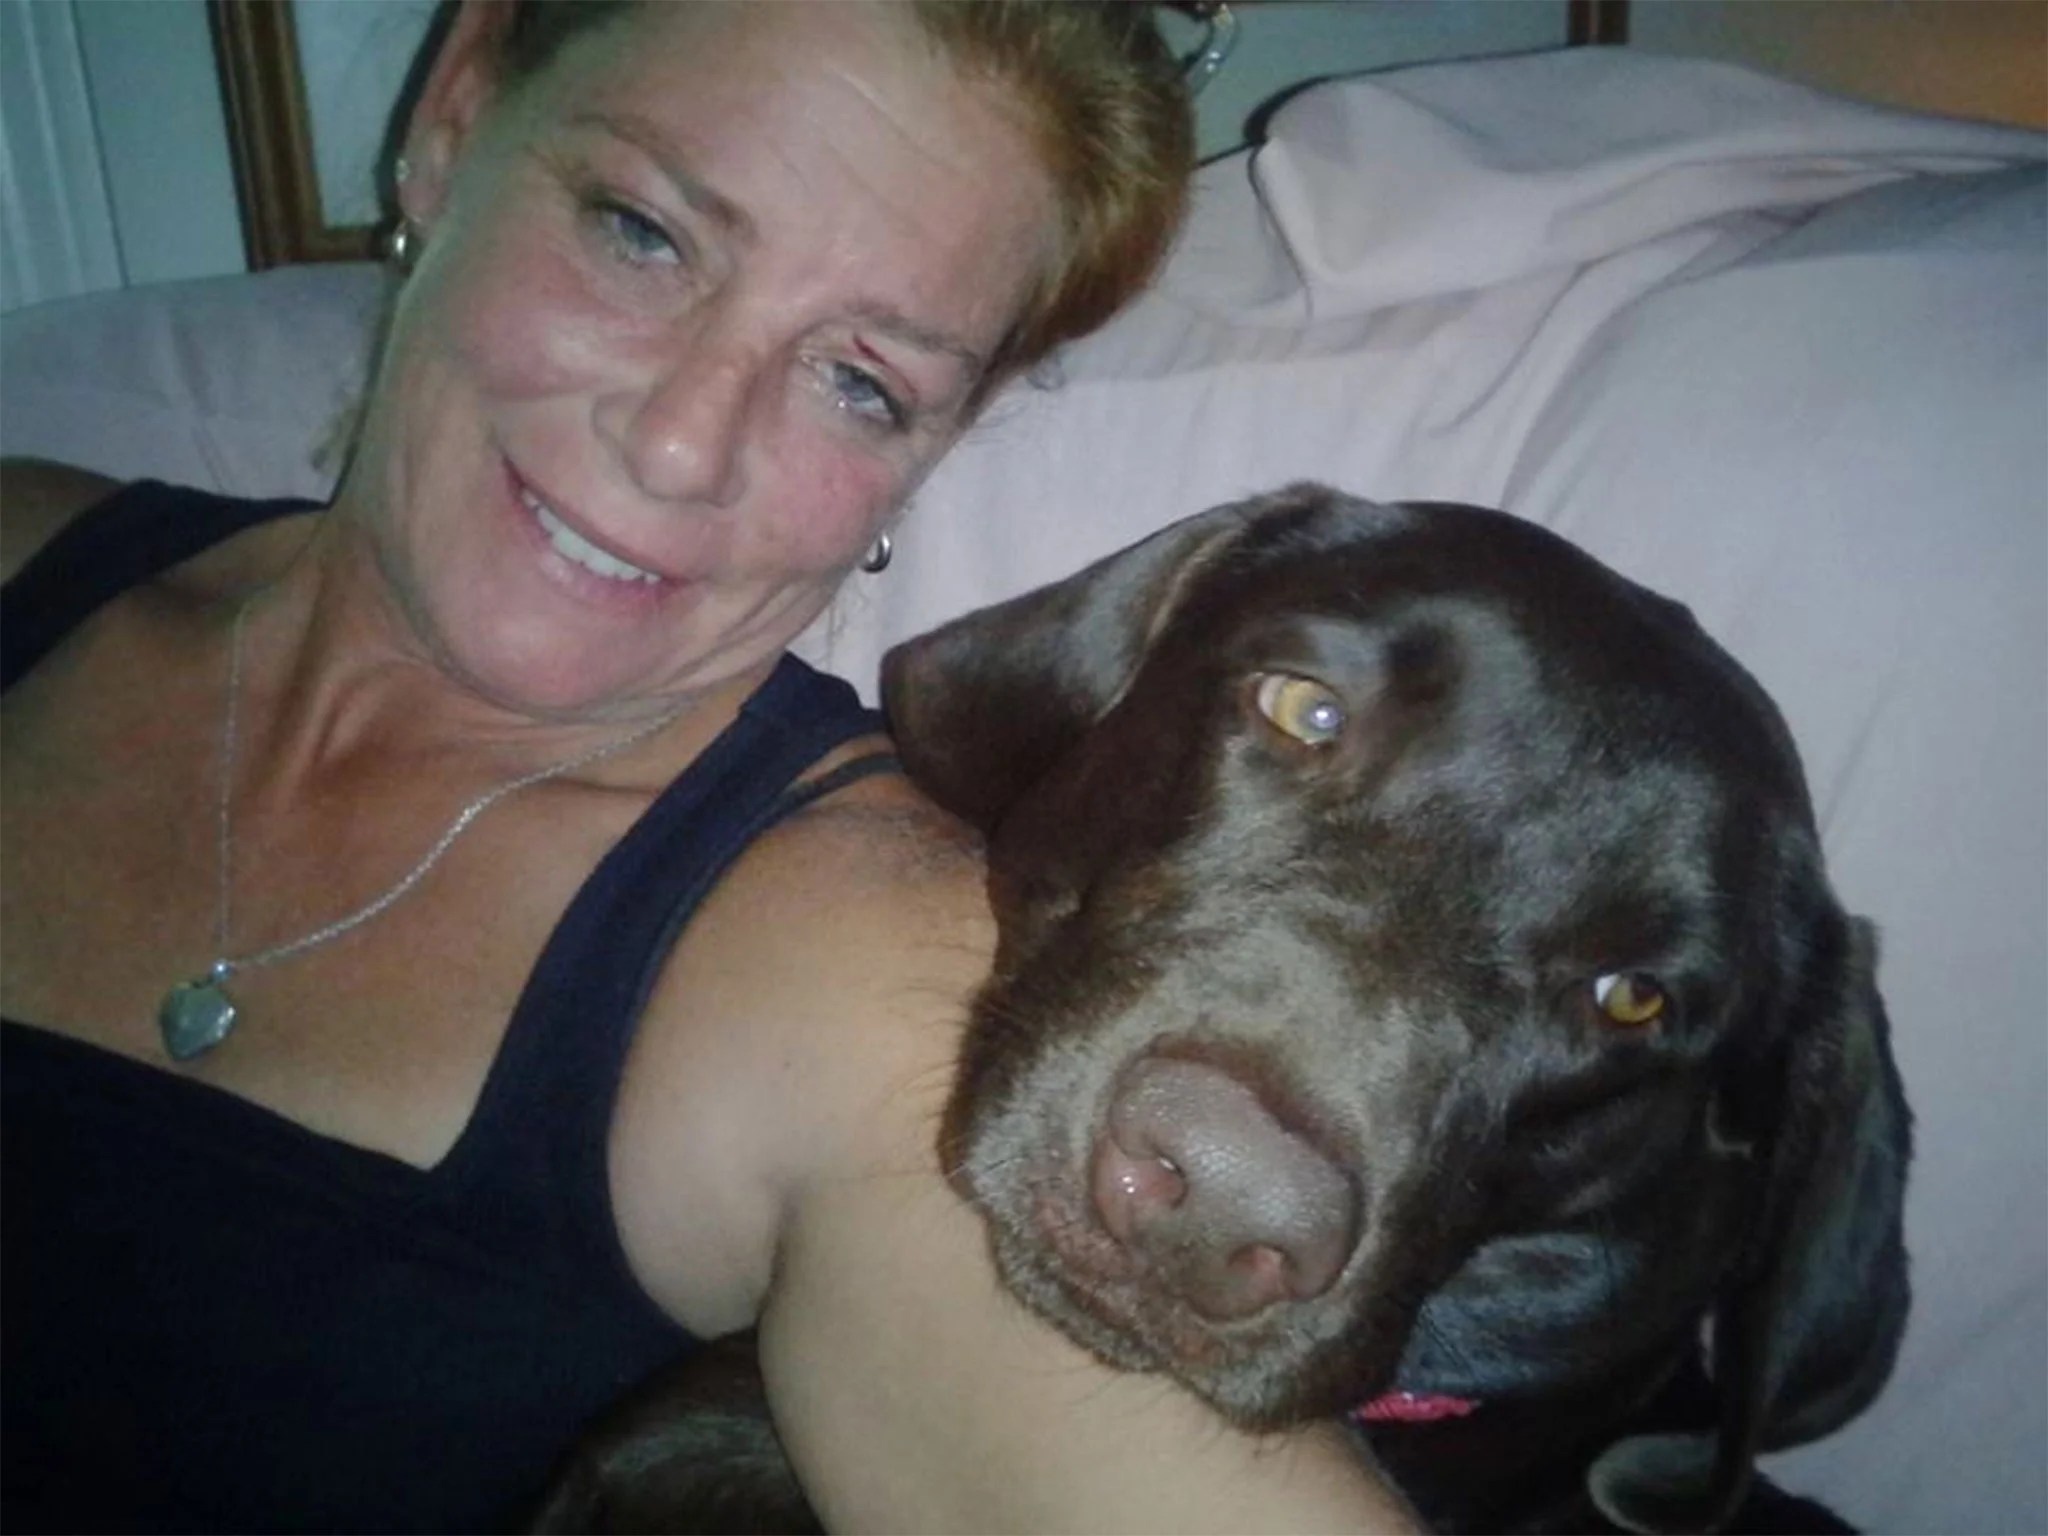 Nifty Lemansky Woman Who Taped Mouth Shut Found Guilty Animal Cruelty Katie Brown Gryphon Studio Katie Brown Er Boston Area bark post Katie Brown Dog